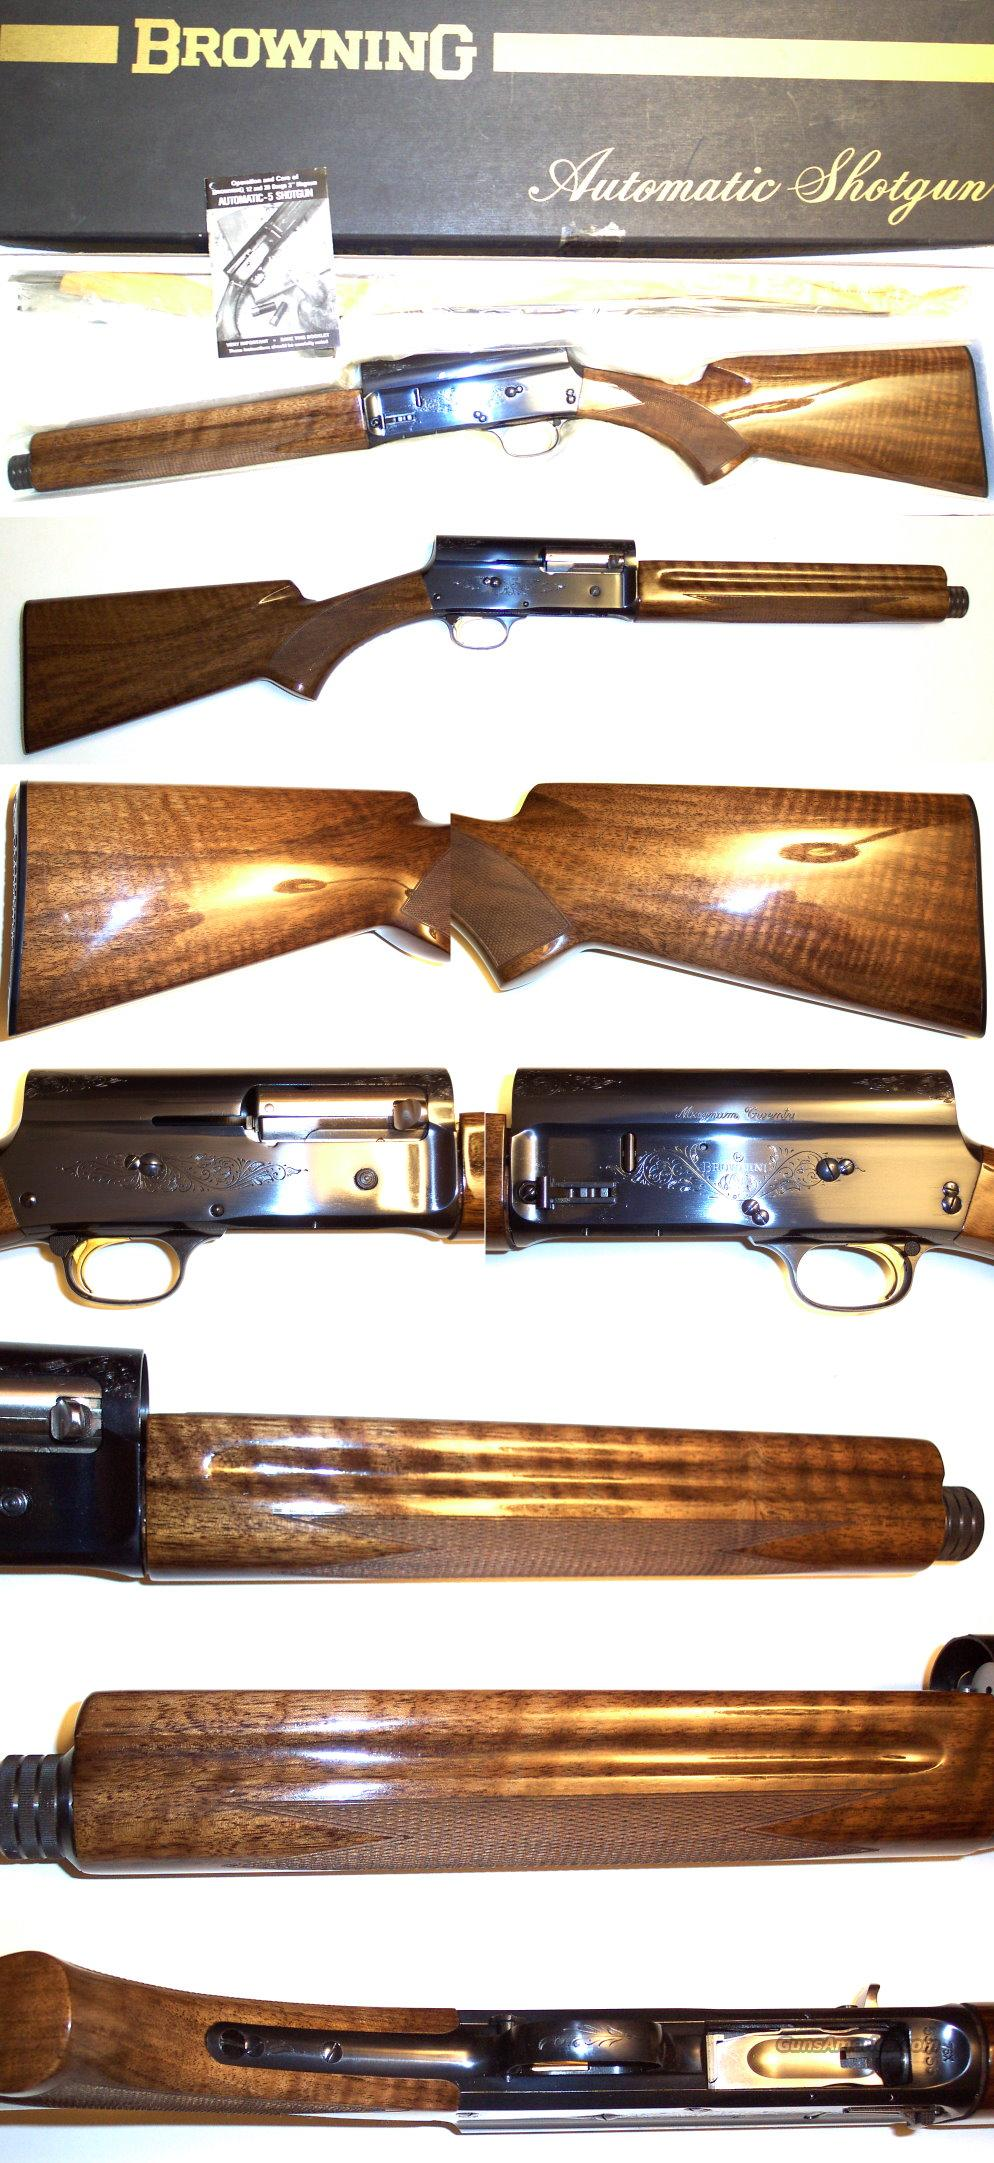 '76 Belgium Browning MAG 20 NIB and perfect!  Guns > Shotguns > Browning Shotguns > Autoloaders > Hunting